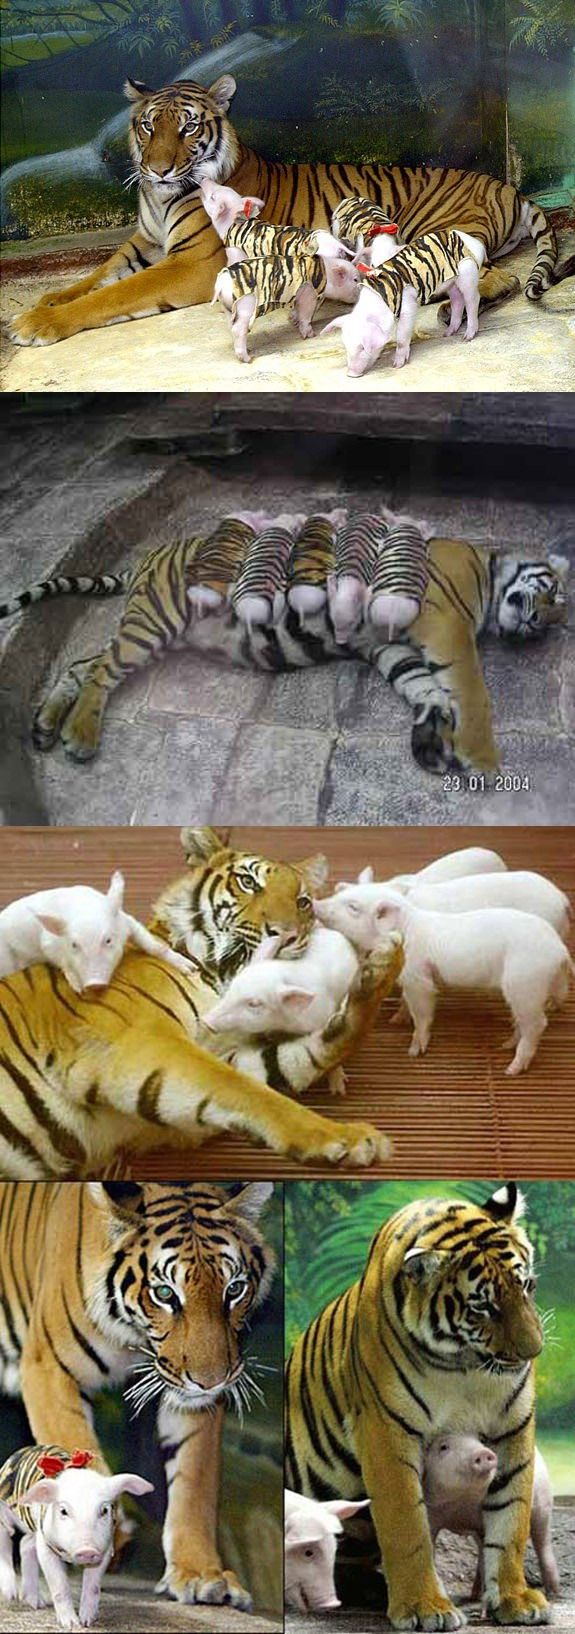 At Sriracha Tiger Zoo in Thailand, a mother tiger lost her cubs due to premature labour, then became depressed. Her health declined and she was diagnosed with depression.   Zoologists wrapped piglets up in tiger-print cloth, and presented them to the mother tiger, who took them in as her own. Her health is back on track.